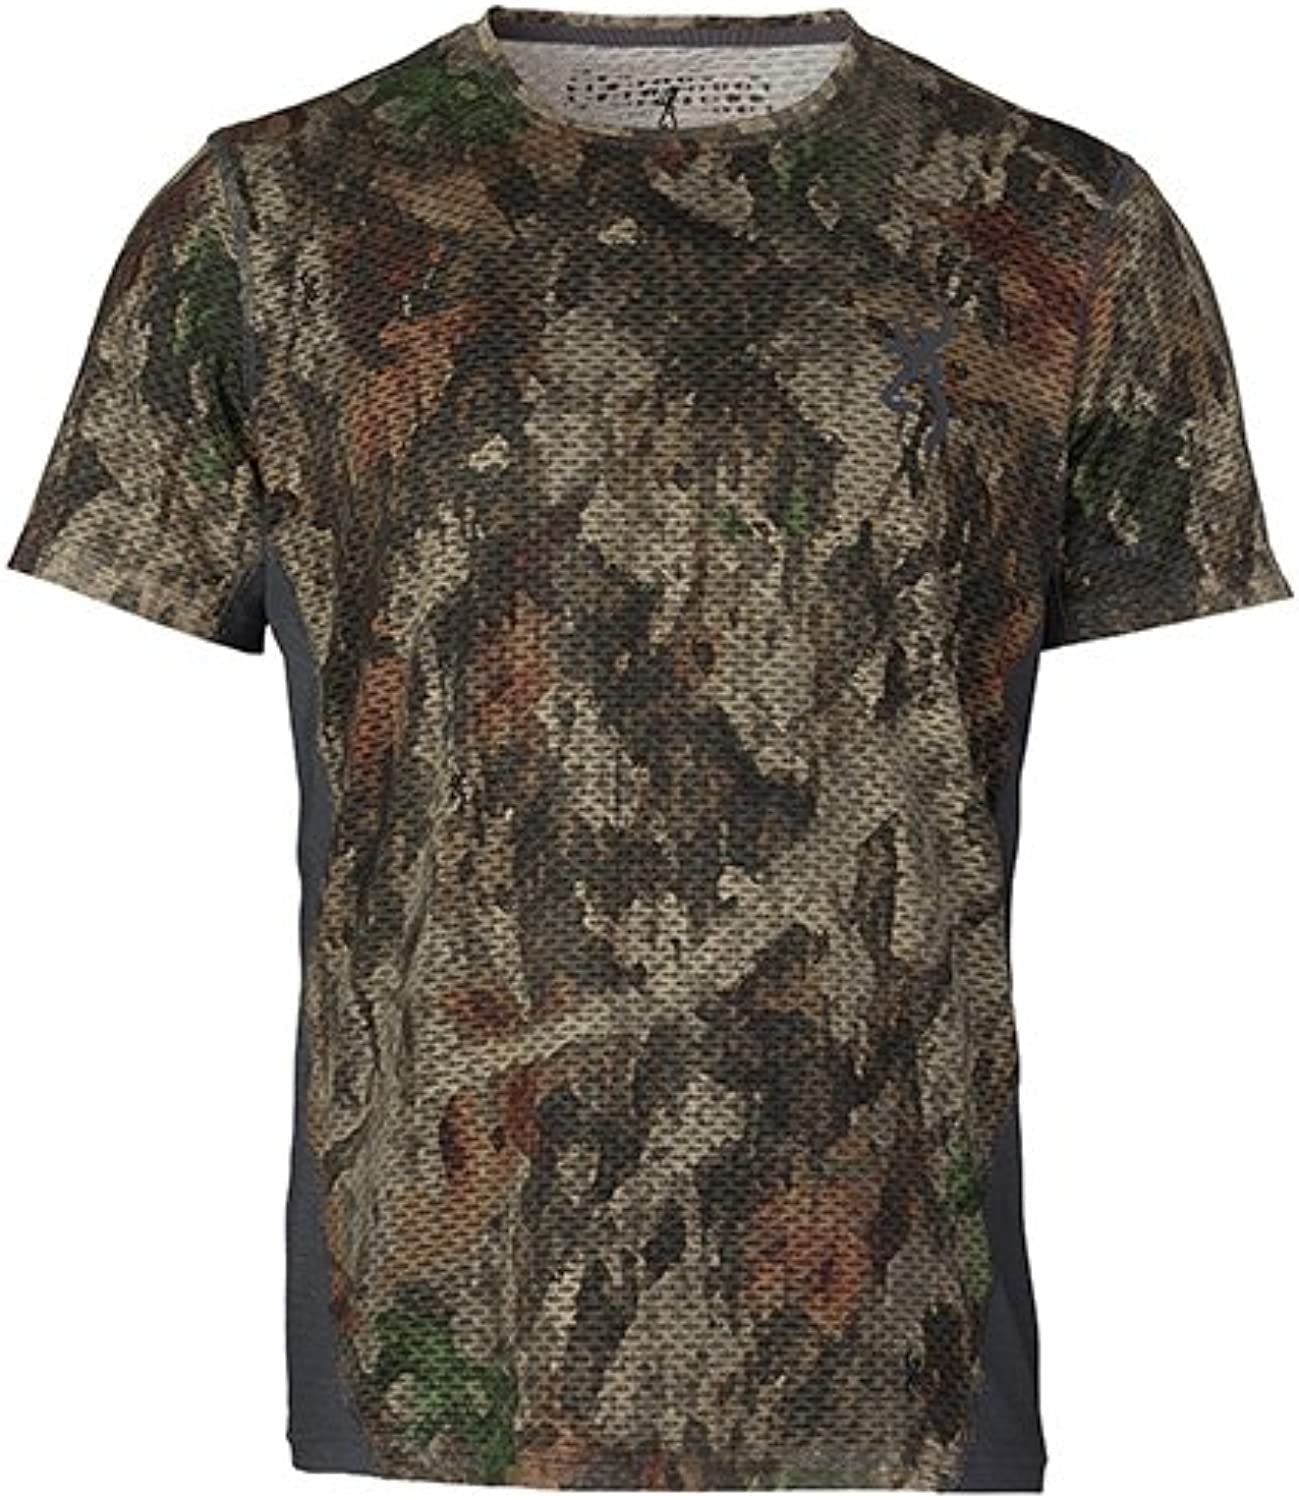 Browning Unisex-Adult Browning, Hell's Canyon Speed Plexus-FM Short Sleeve Mesh Shirt, ATACS Tree Dirt Extreme, X-Large 3018593204, ATACS-TD